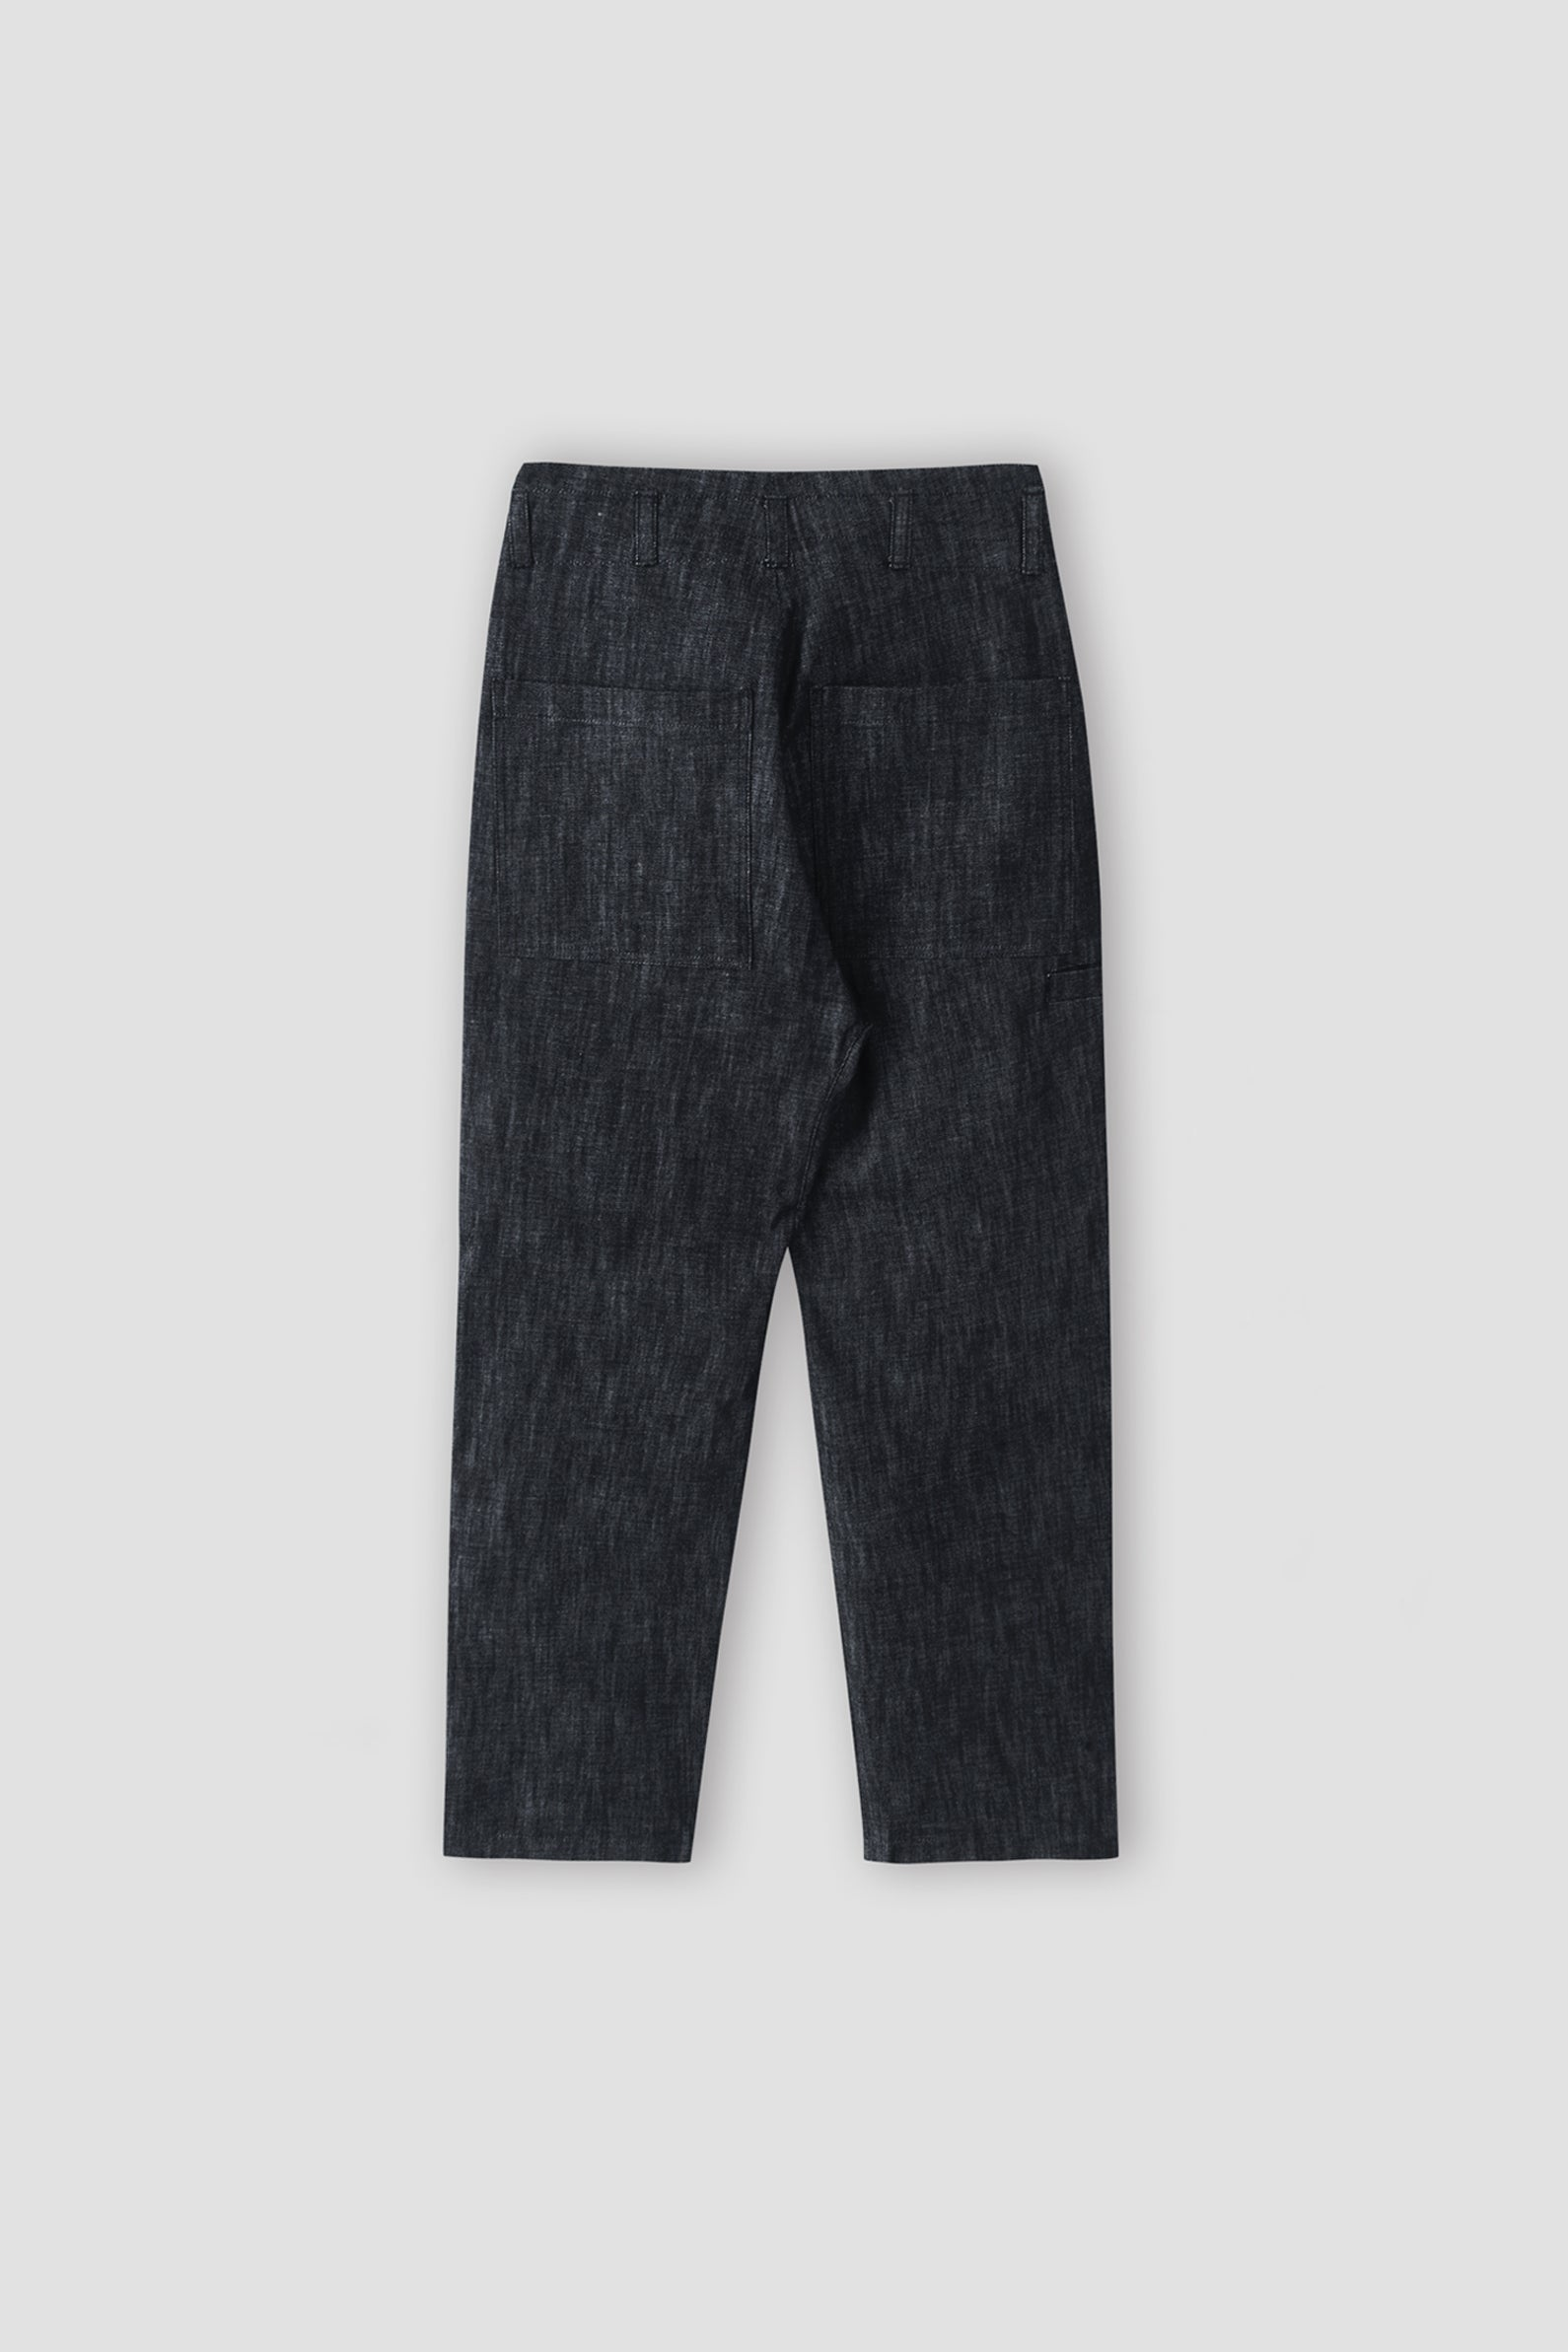 Denim Tuck Trousers